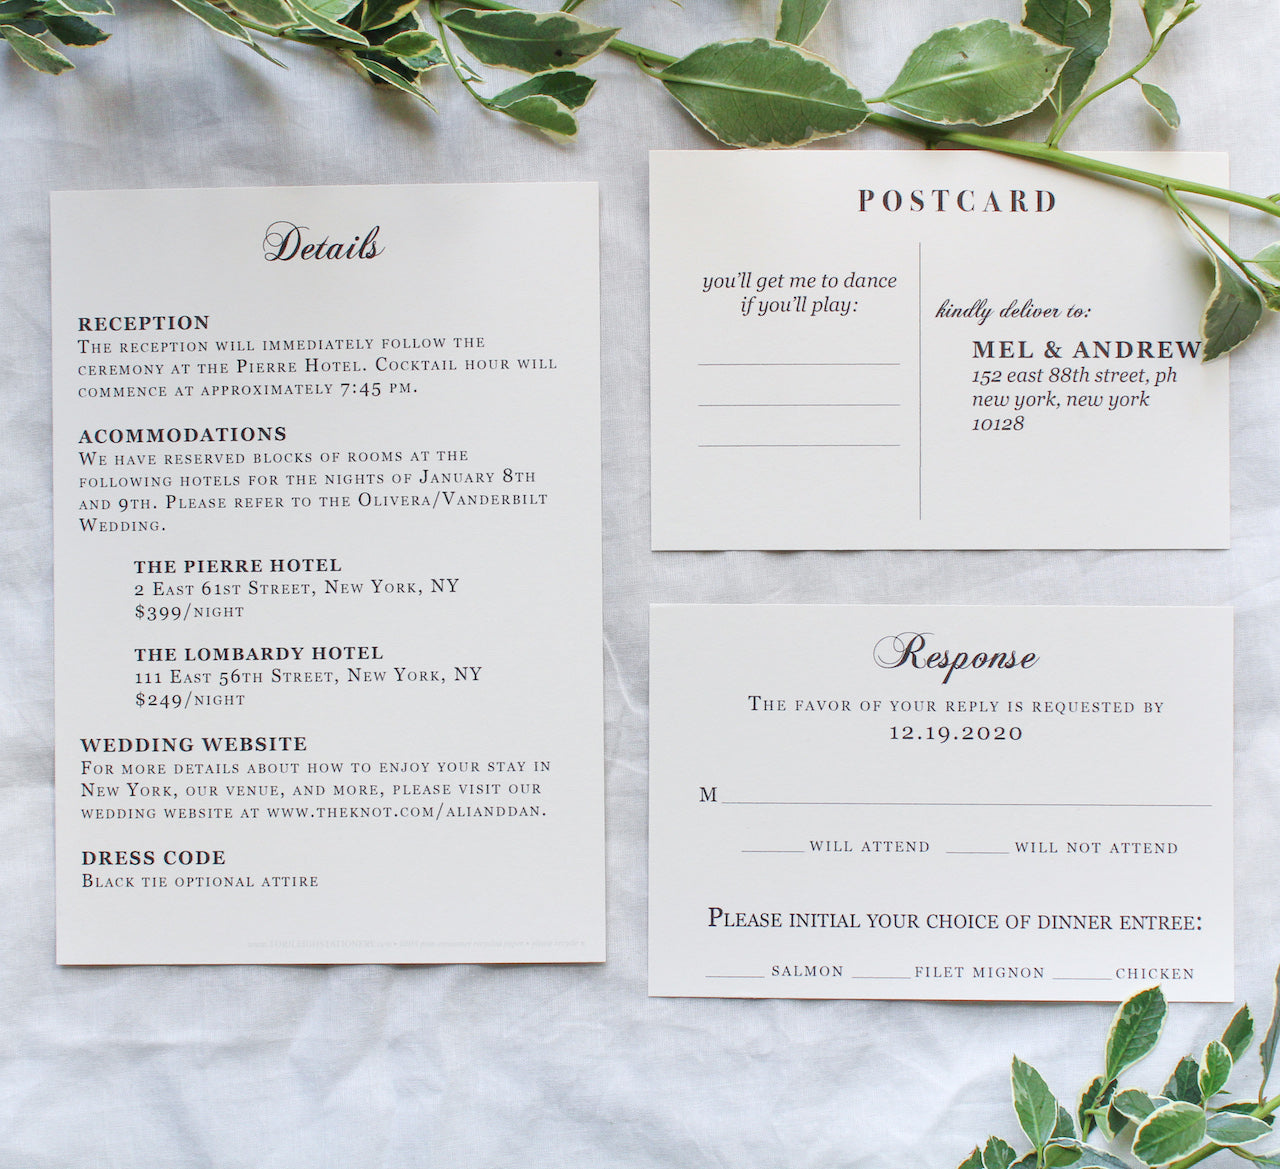 classic southern monogram wedding invitations sustainably printed on 100% recycled paper